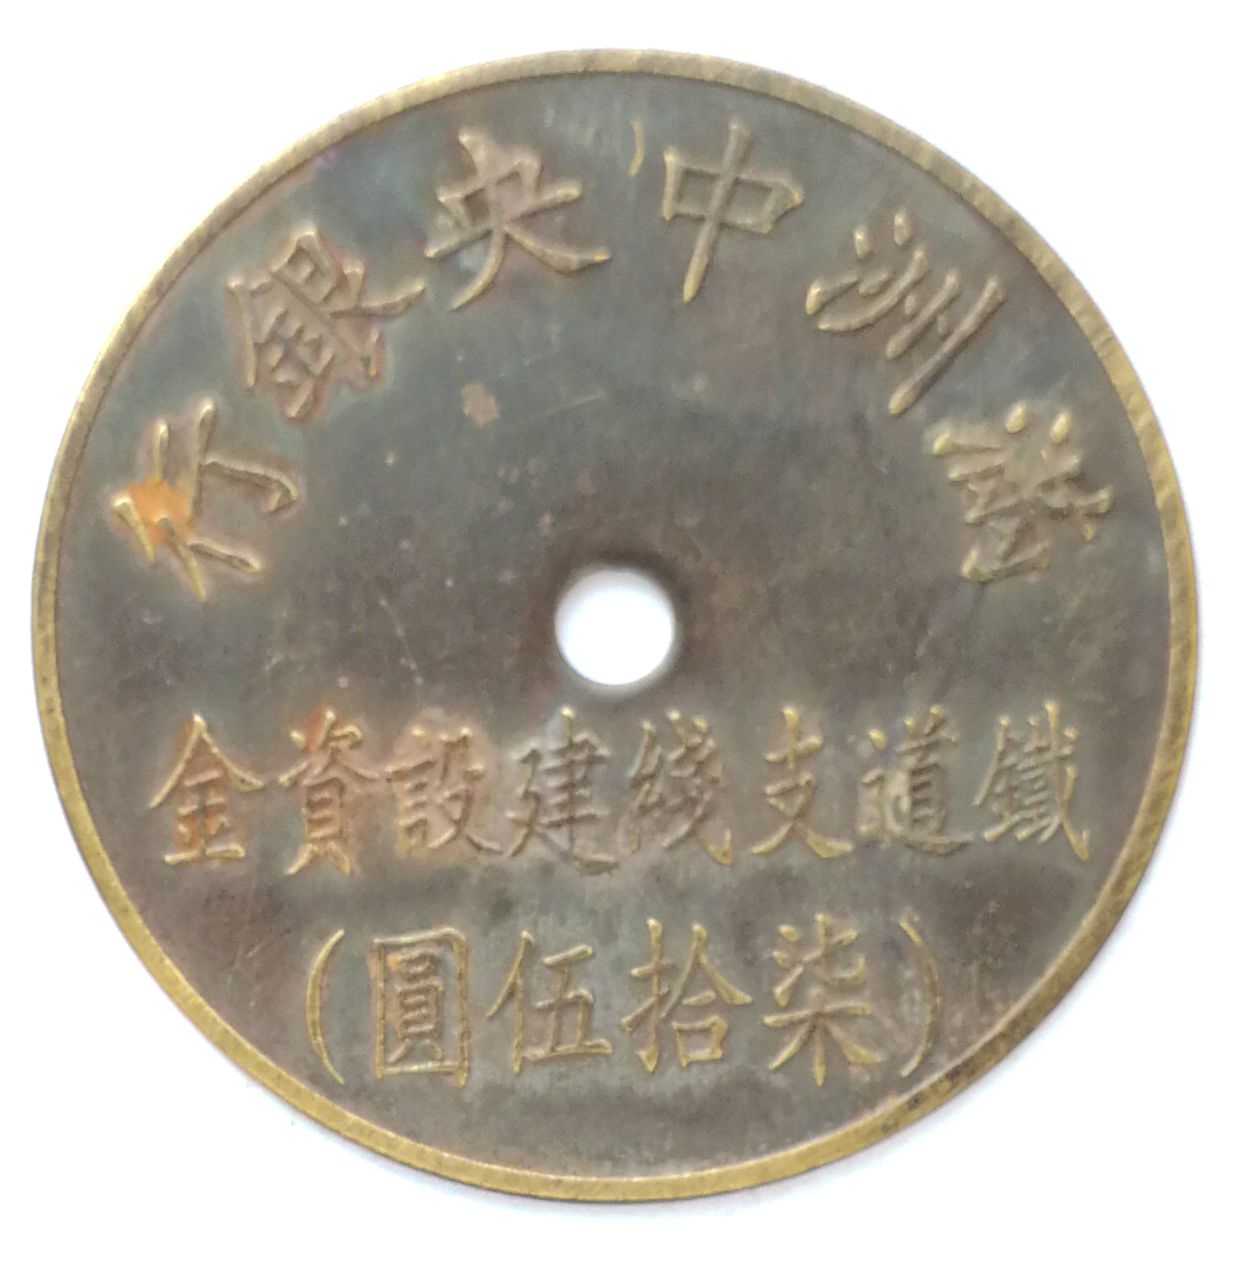 BT564, Railway Branch Line Construction Fund, Manchukuo Token, 75 Yen, China 1944